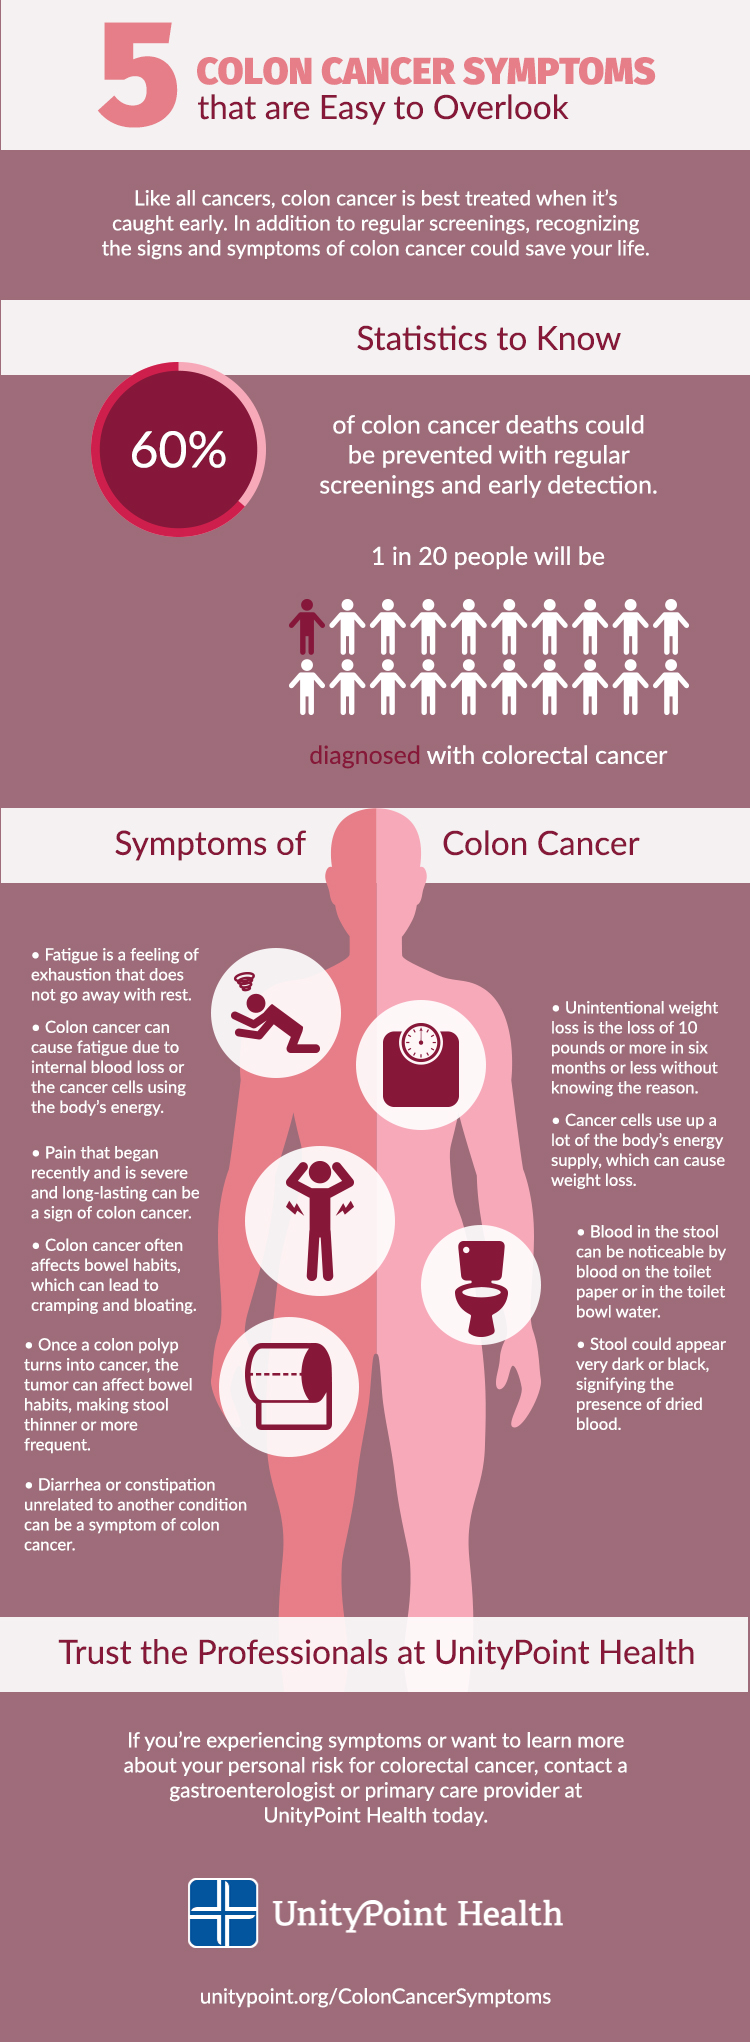 5 Colon Cancer Symptoms that are Easy to Overlook